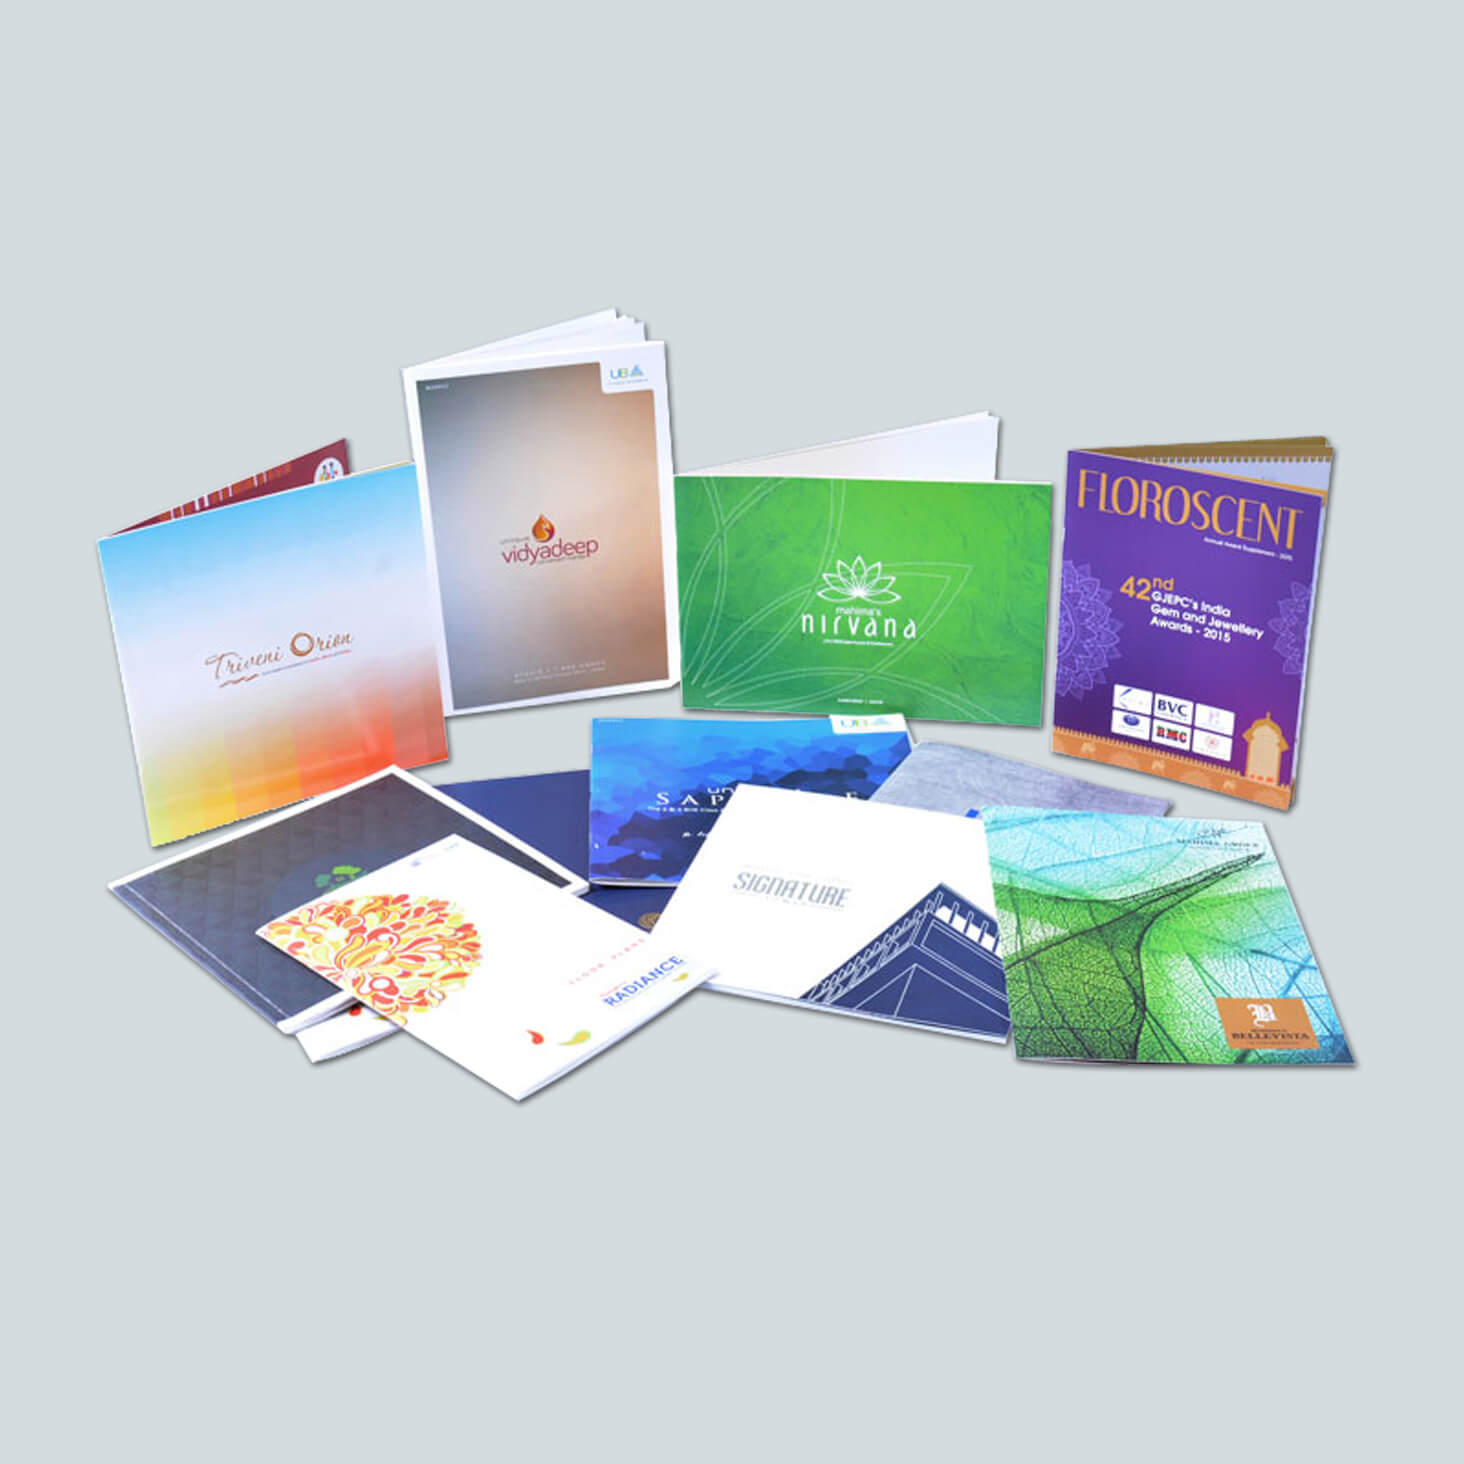 Prospectus Catalogue Product Catalogue Printing In Jaipur Prospectus Printing